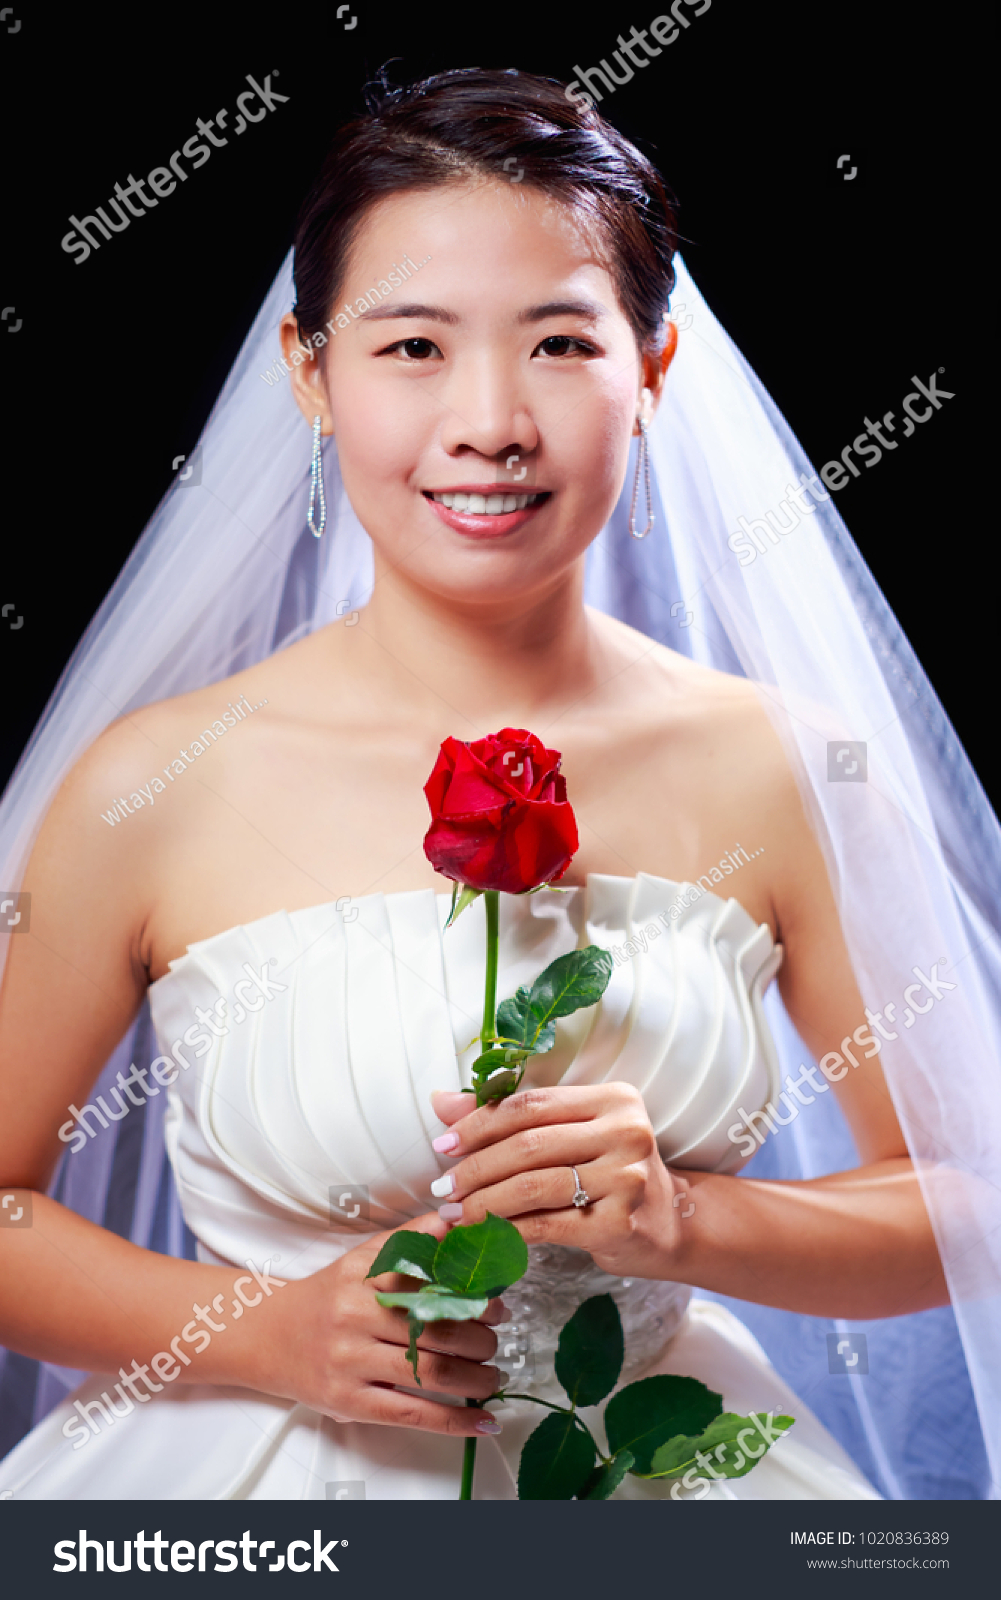 Beautiful Asian Look Woman White Wedding Stock Photo (Royalty Free ...